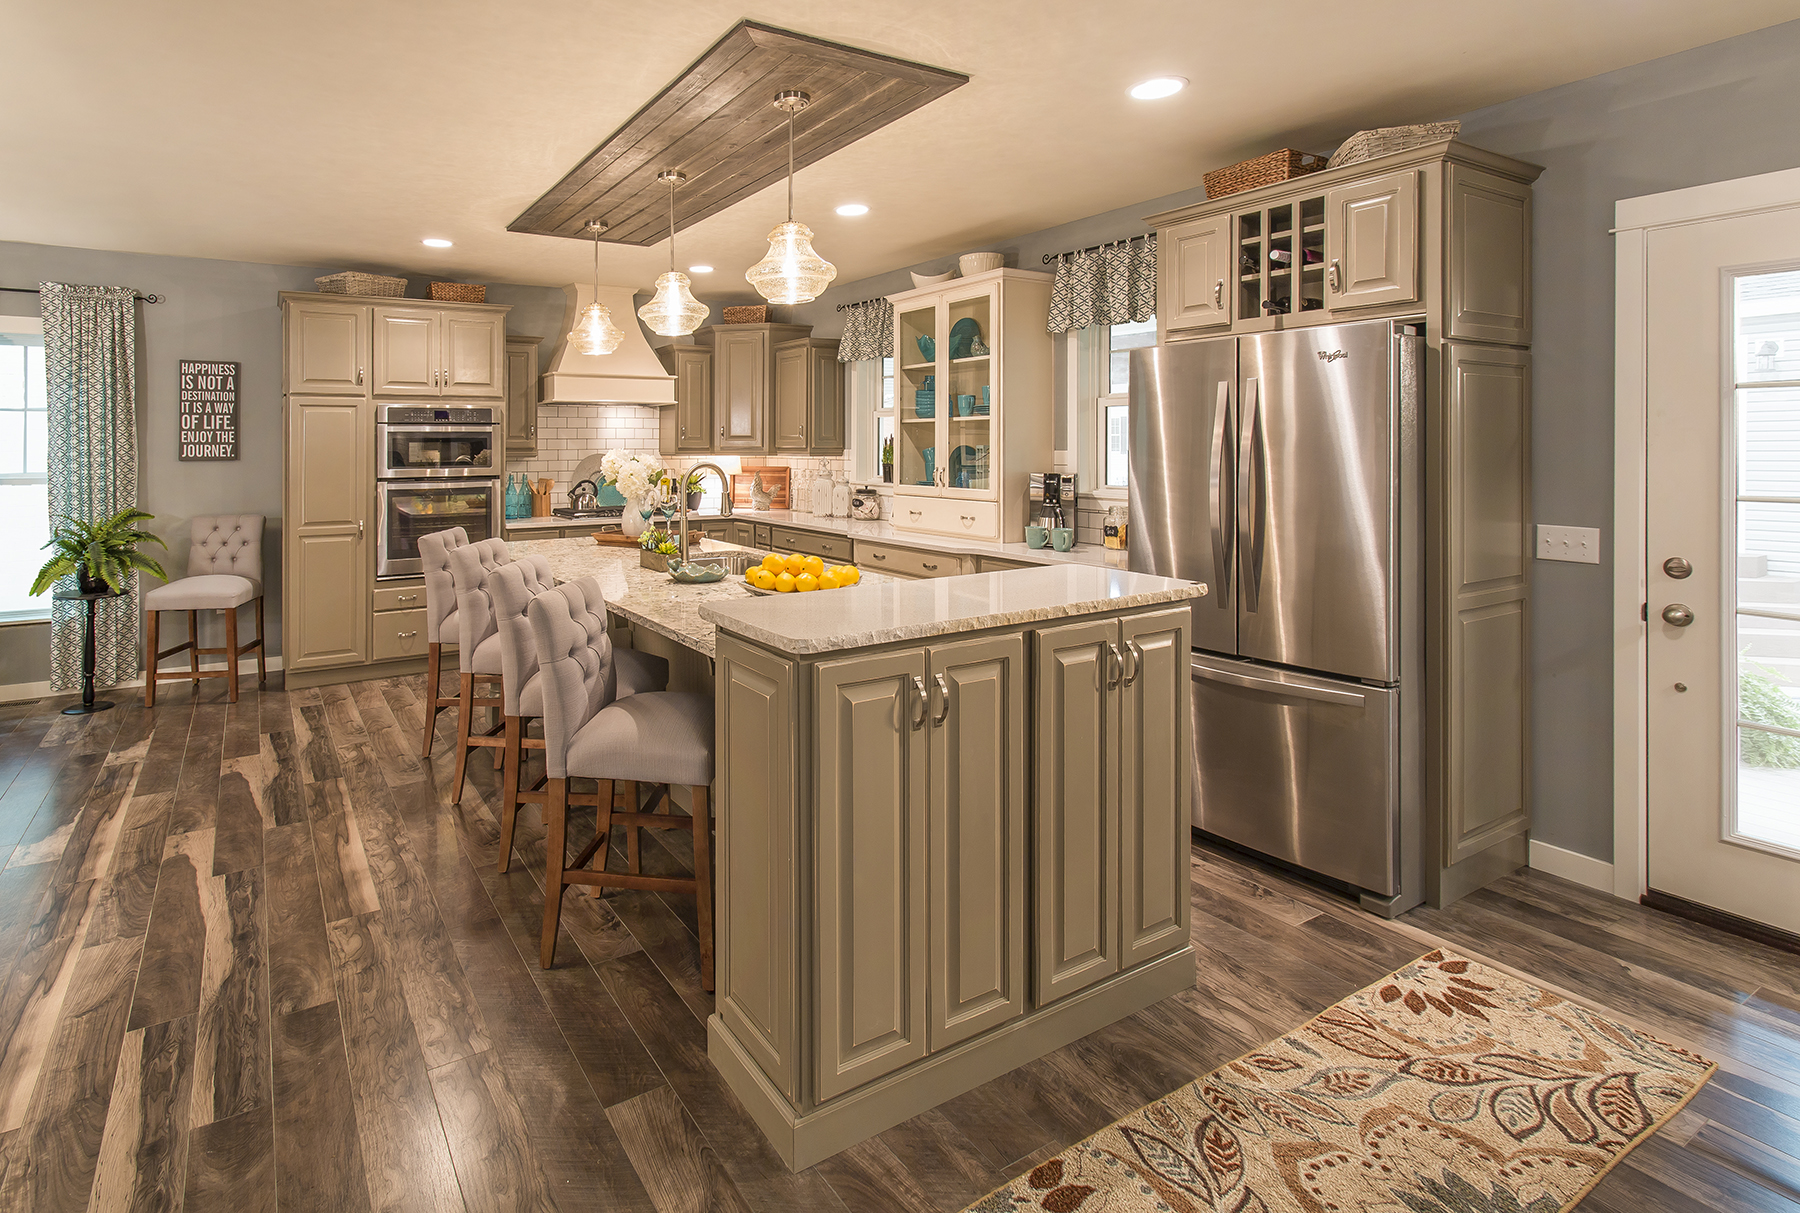 Ritz Craft Custom Homes Honored By National Awards Program